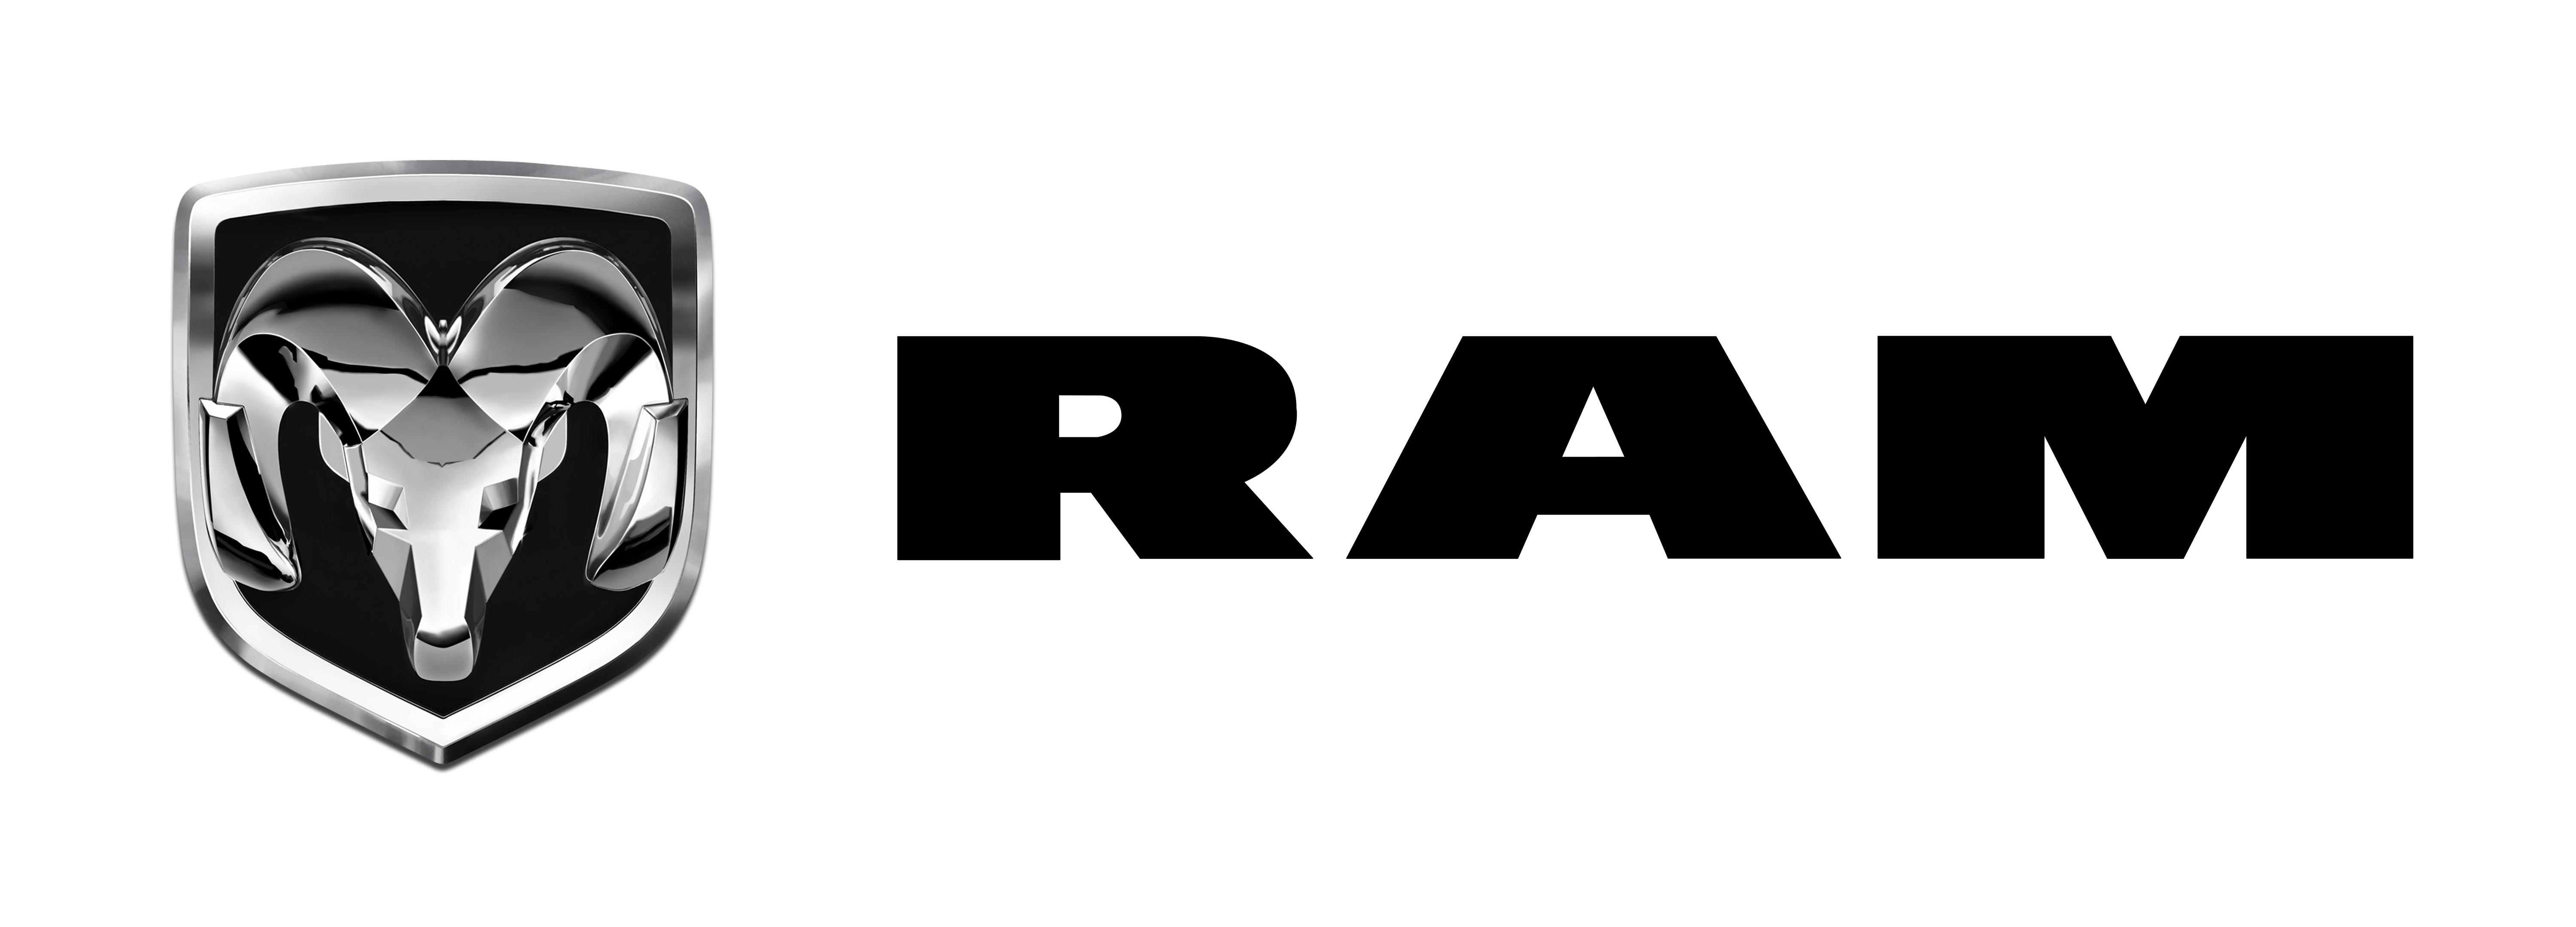 2019 Ram 1500 Slips From Under Covers - Auto Ram Logo Vector PNG